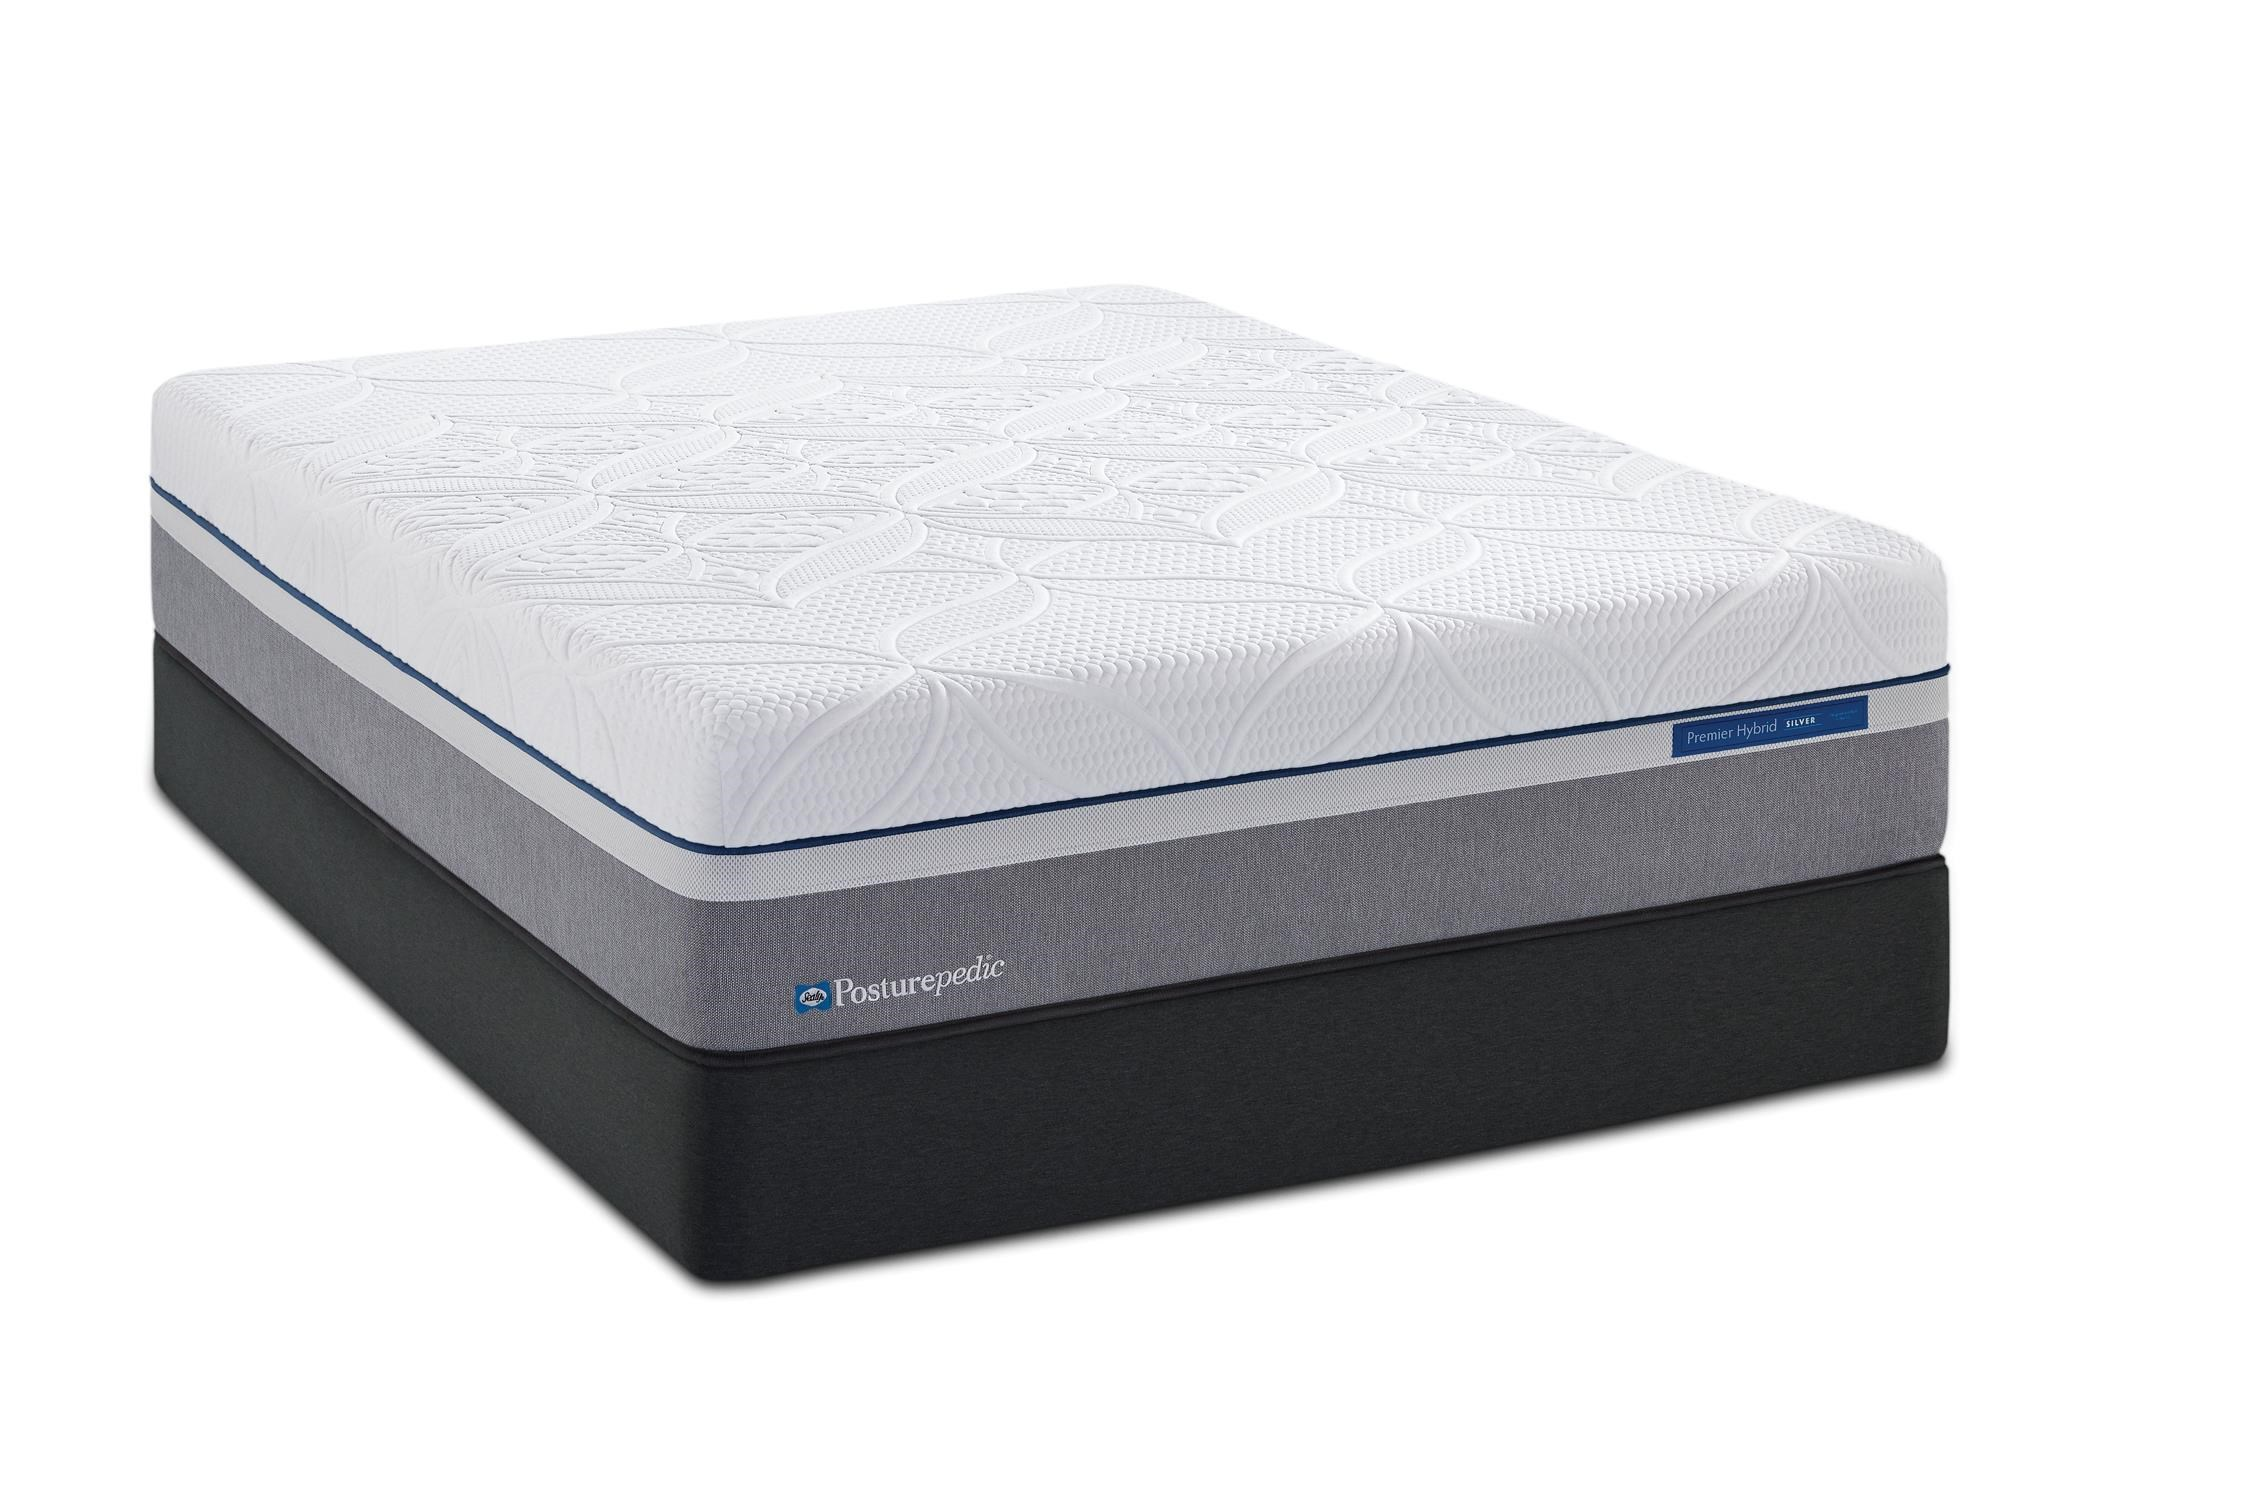 Sealy Cobalt Firm King 11 1 2 Firm Hybrid Mattress And Reflexion